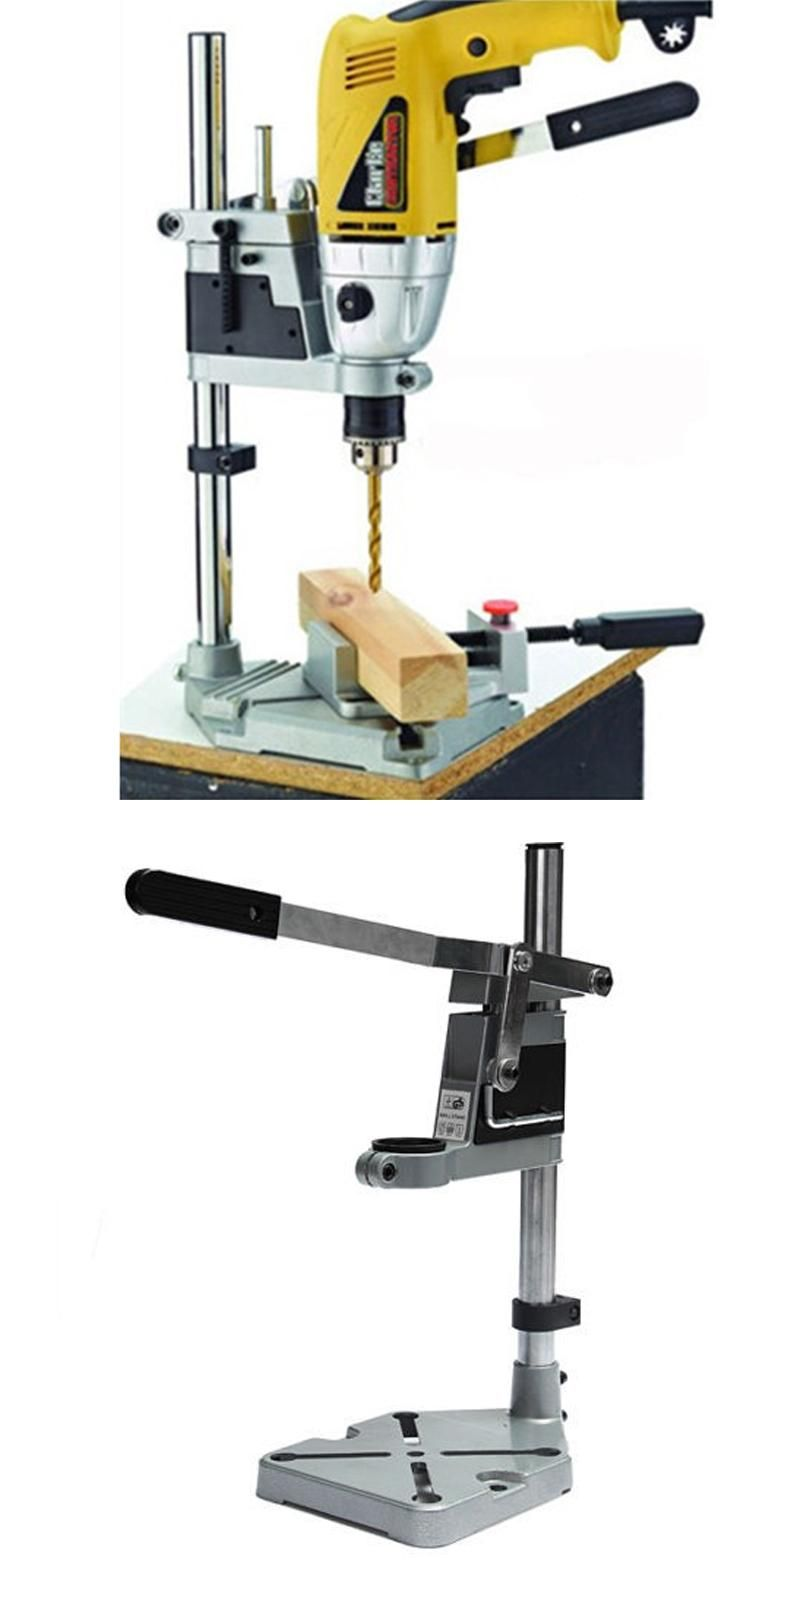 Visit To Buy Power Tools Accessories Bench Drill Press Stand Clamp Base Frame For Electric Drills Diy Too Drill Holder Power Tool Accessories Electric Drills